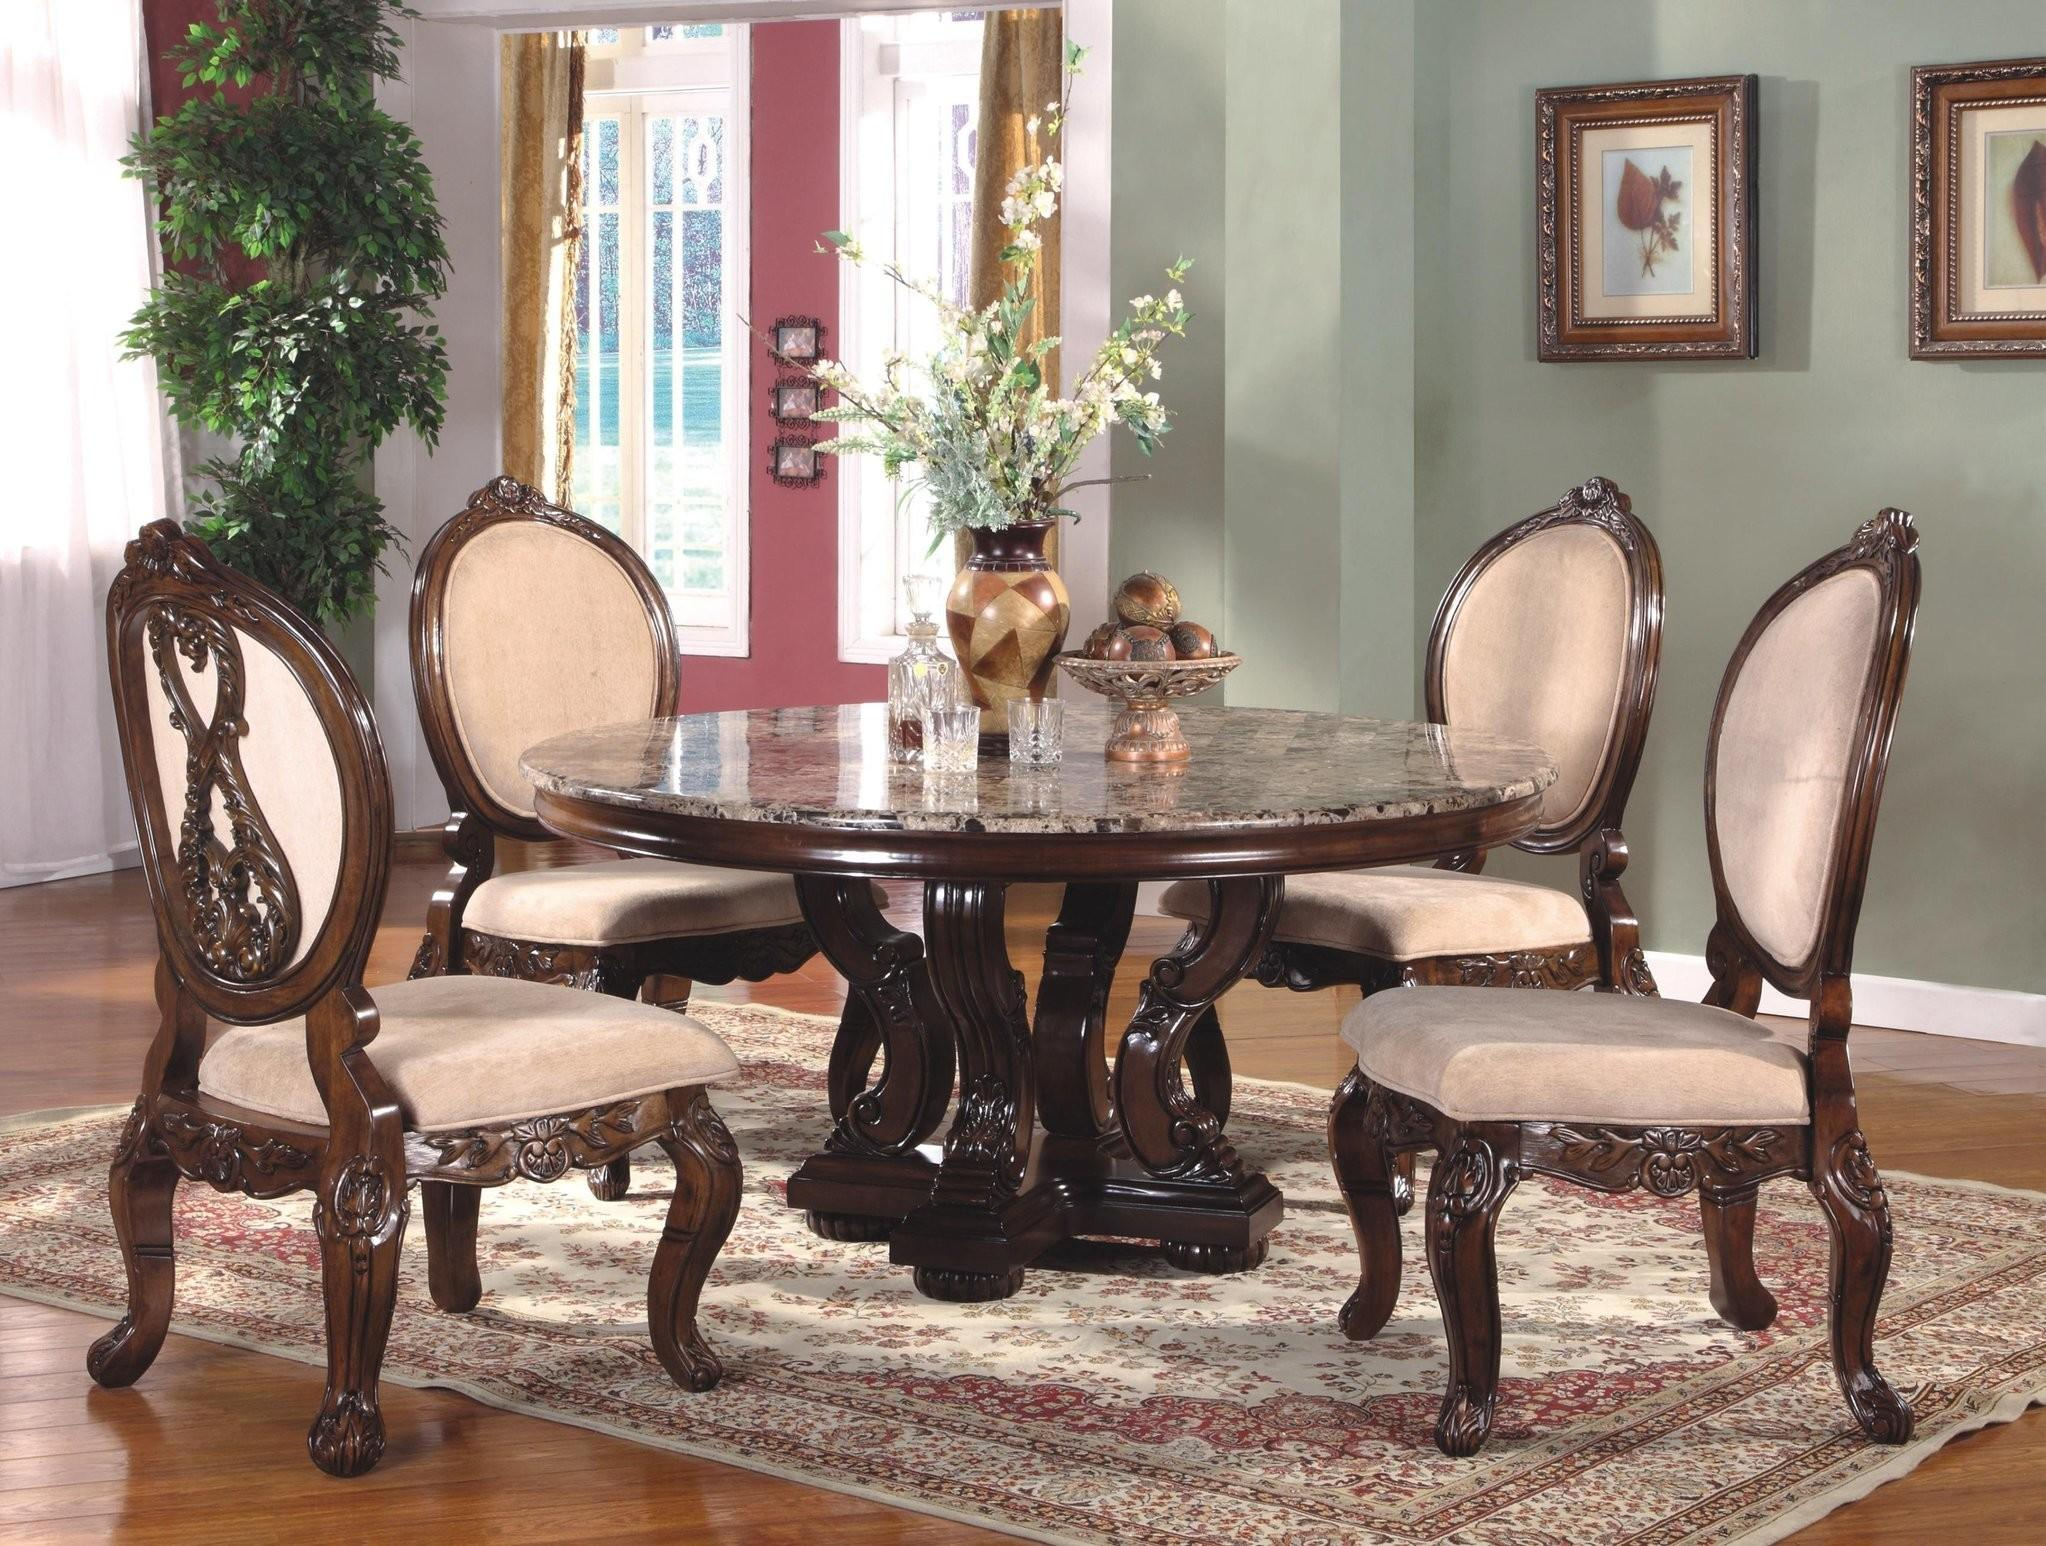 Enjoy Lavish Dinner Round Dining Room Sets